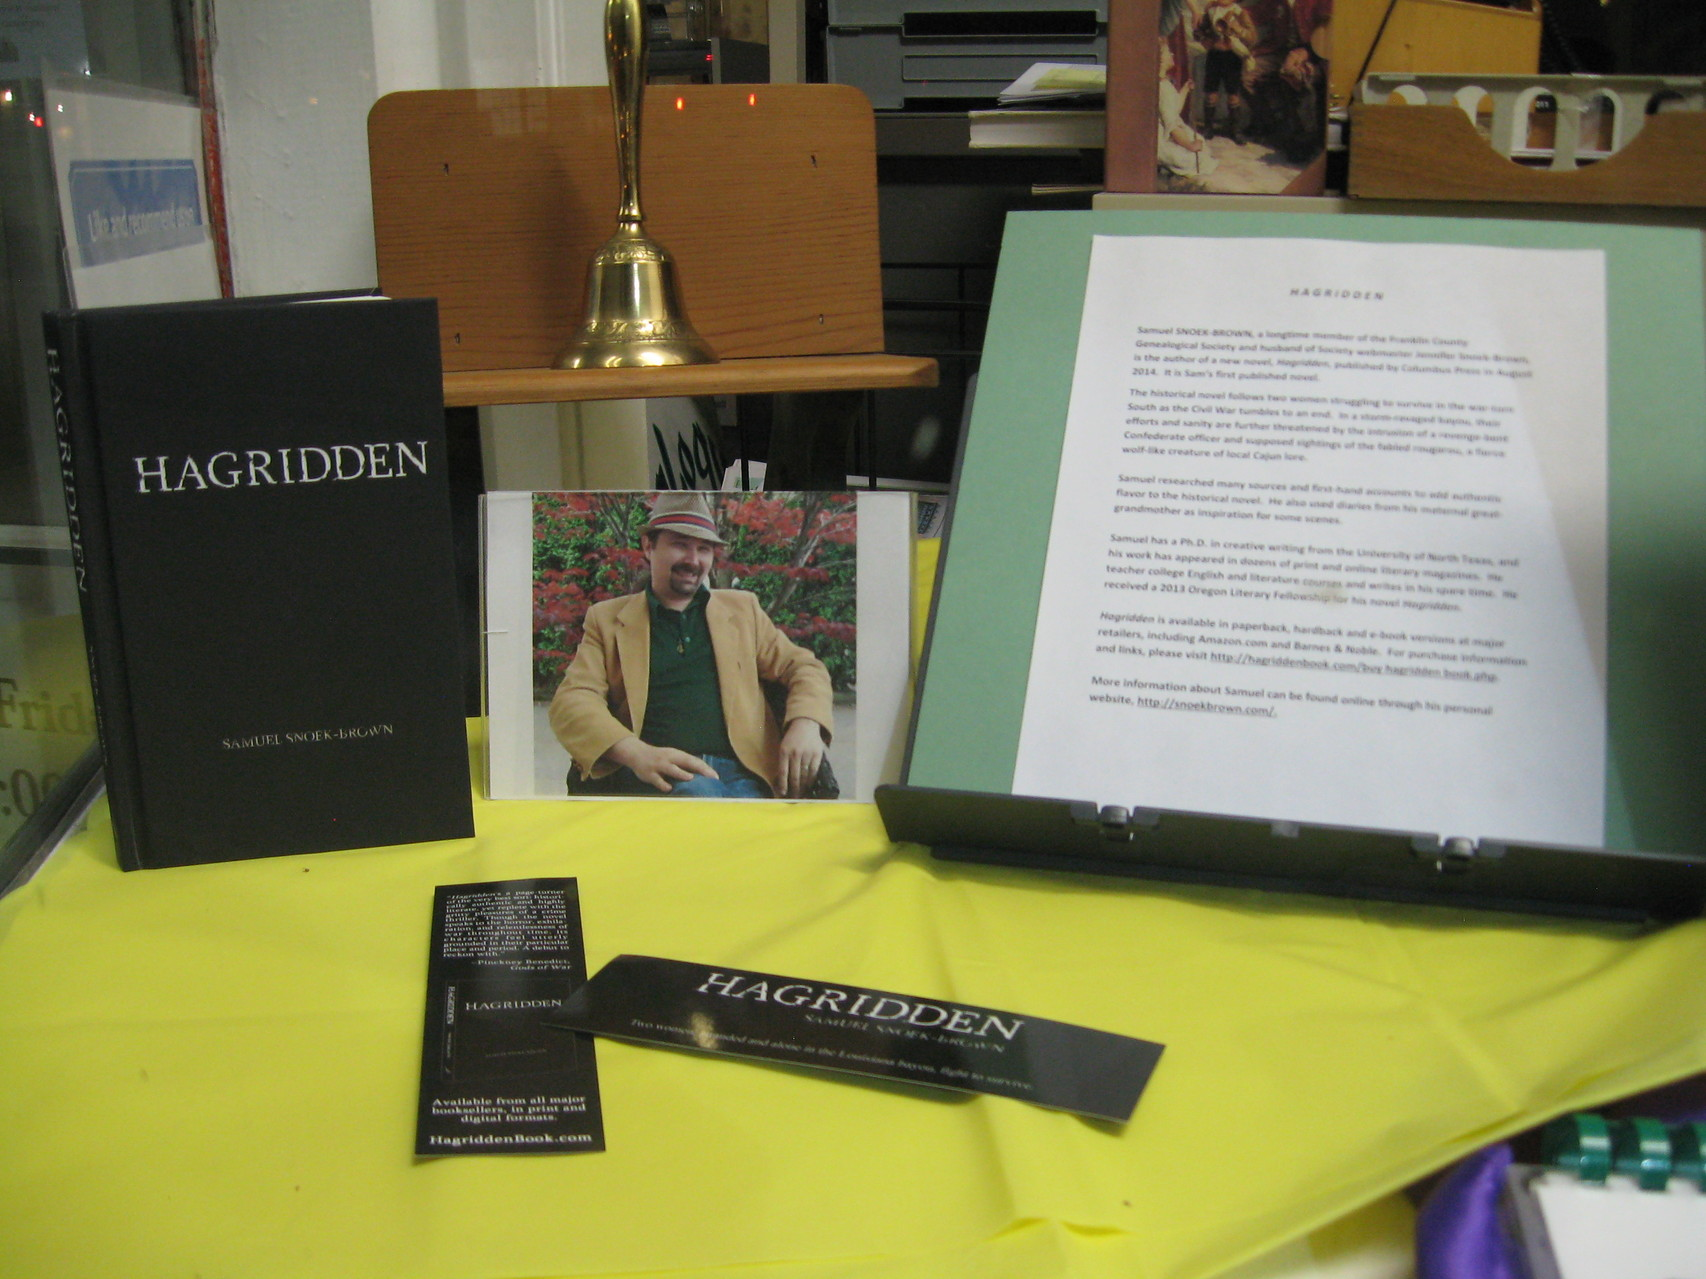 Fall 2014 book display of 'Hagridden,' a new book by Society member Samuel Snoek-Brown (Photo courtesy of Sue Bolin)